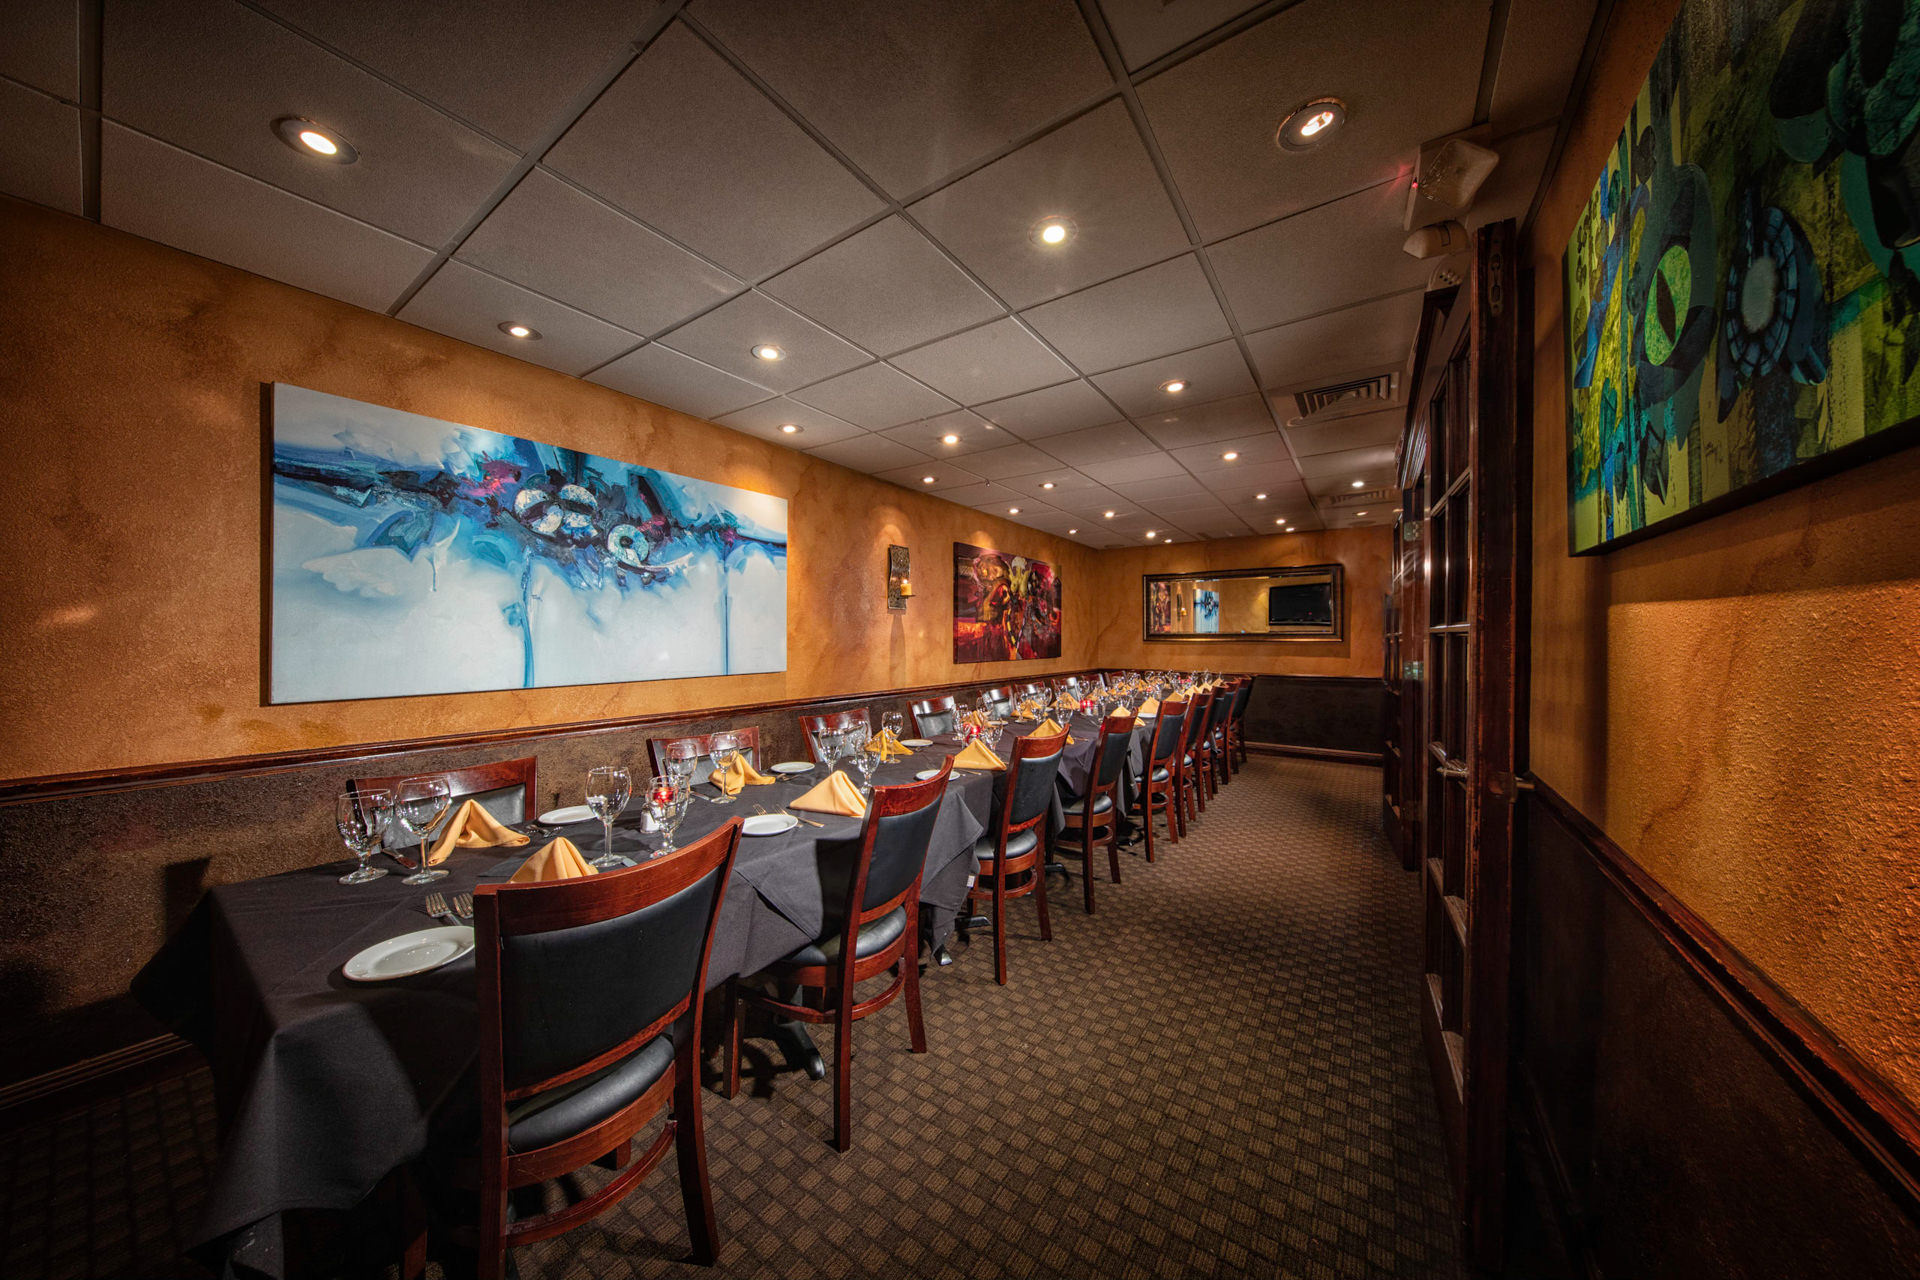 BACKROOM - HOLDS UP TO 26 GUESTS. HAS A 55 INCL FLAT SCREEN TV TO BE CONNECTED TO LAPTOP USING AN HDMI CORD. $1,000 F&B MIN TUESDAY-THURSDAY. NO ROOM RENTAL FEES OR AV FEES.